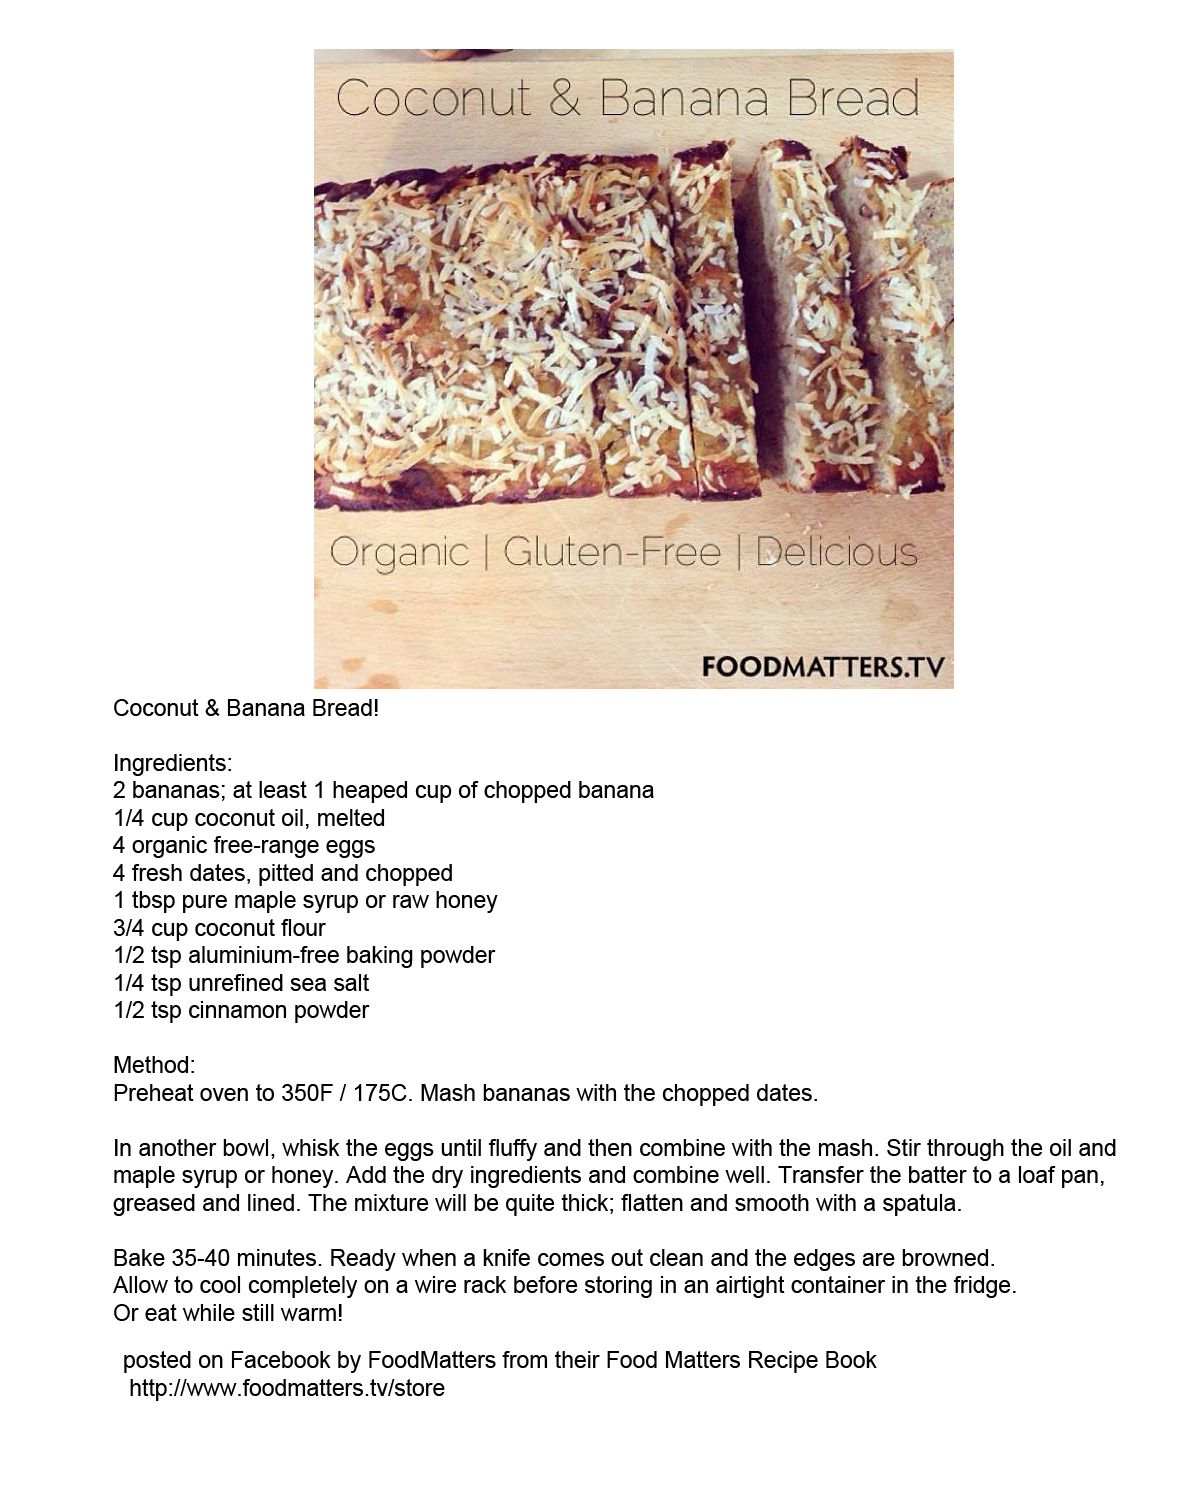 Coconut banana bread posted by food matters on their facebook page free recipes coconut banana bread posted by food matters on their facebook pageexcerpt from their forumfinder Image collections